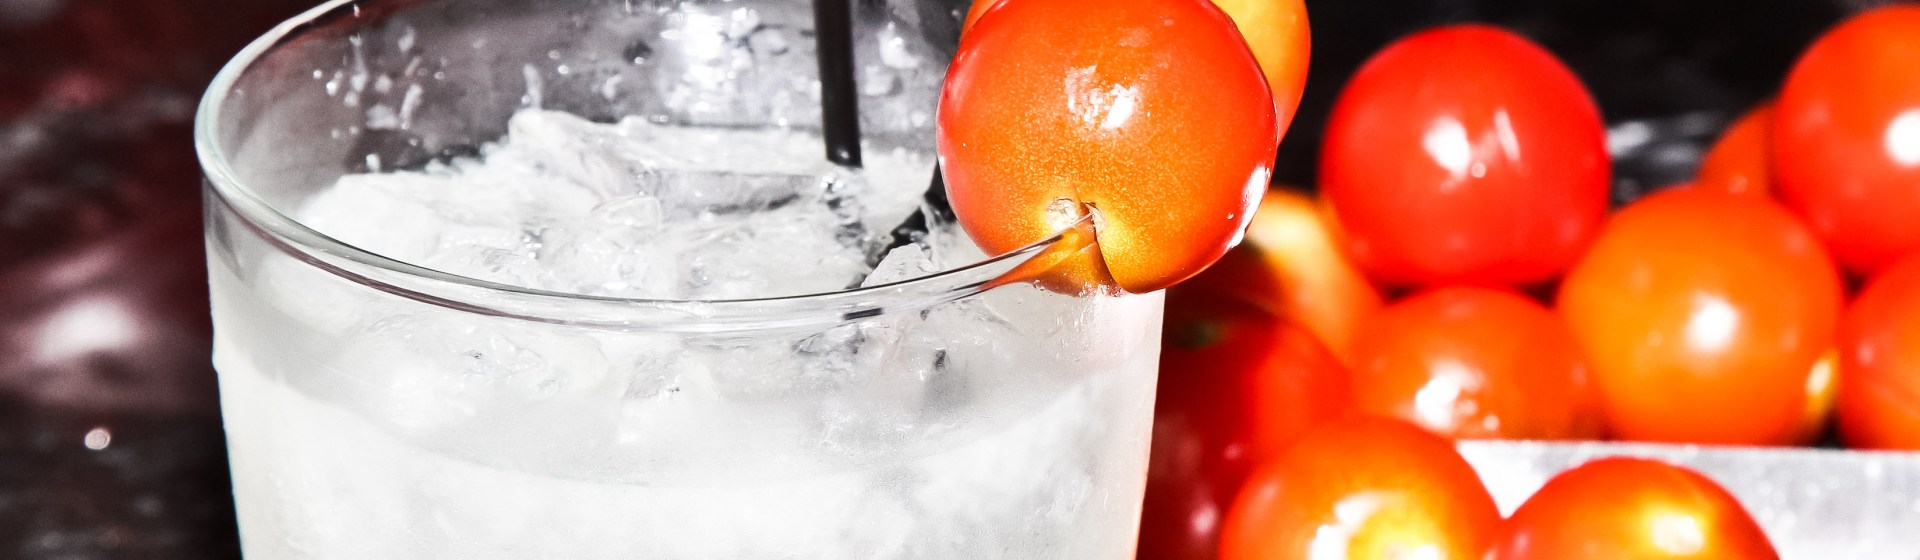 The Hot Tomato Vodka Cocktail Recipe - Food Republic